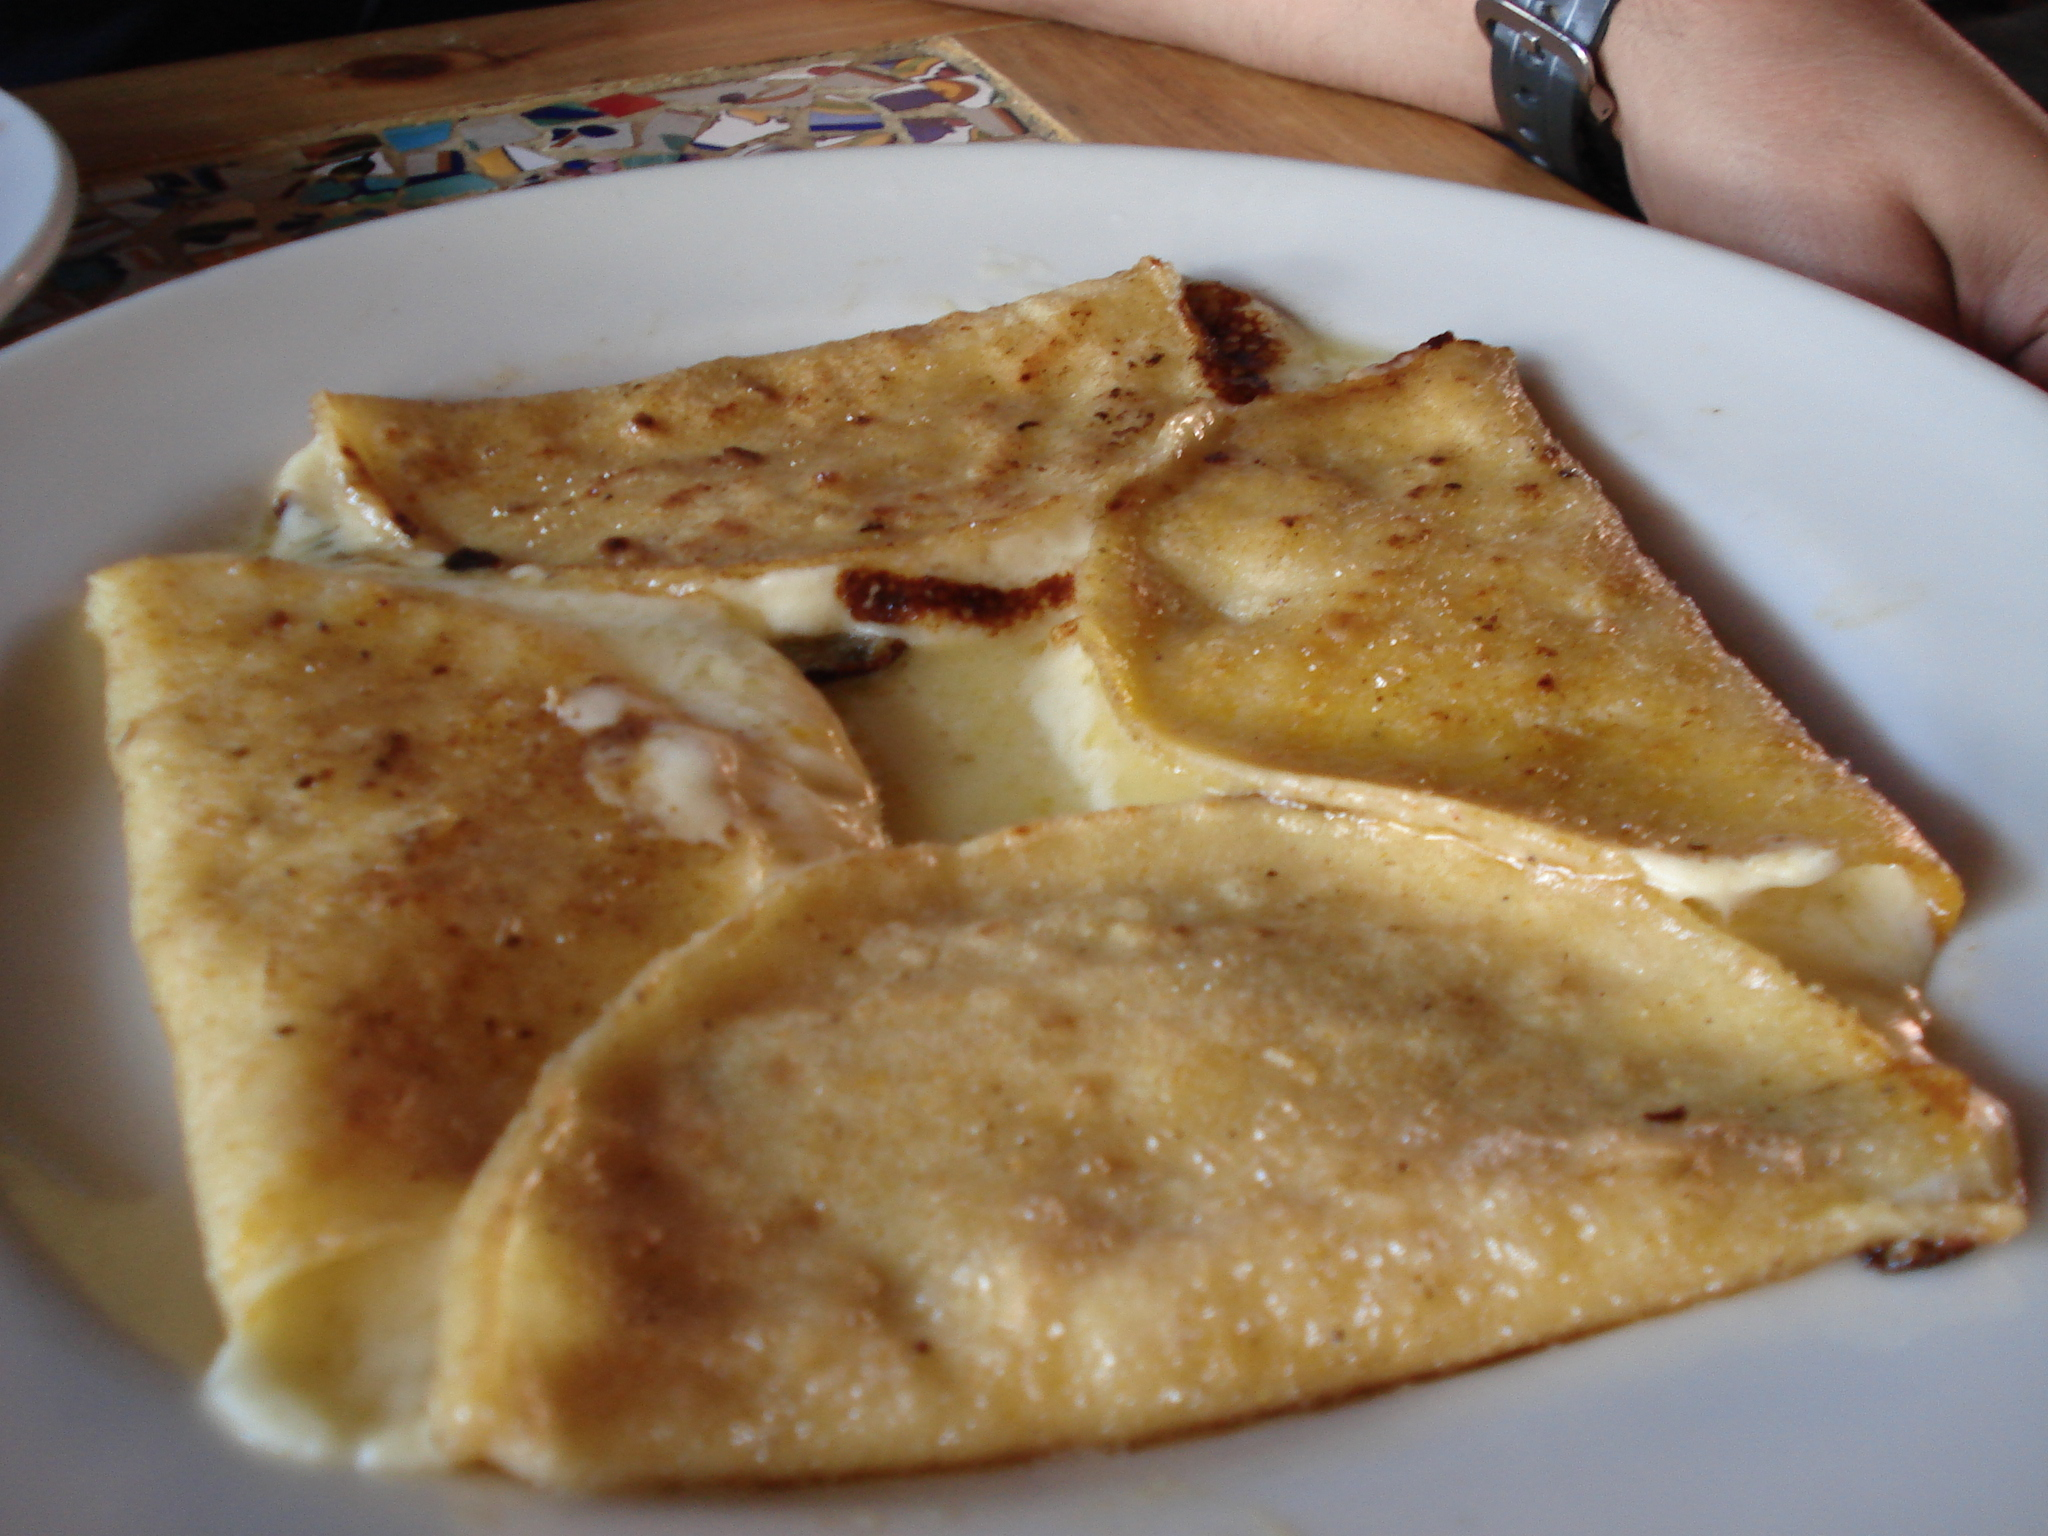 File:Quesadillas tradicionales.jpg - Wikimedia Commons